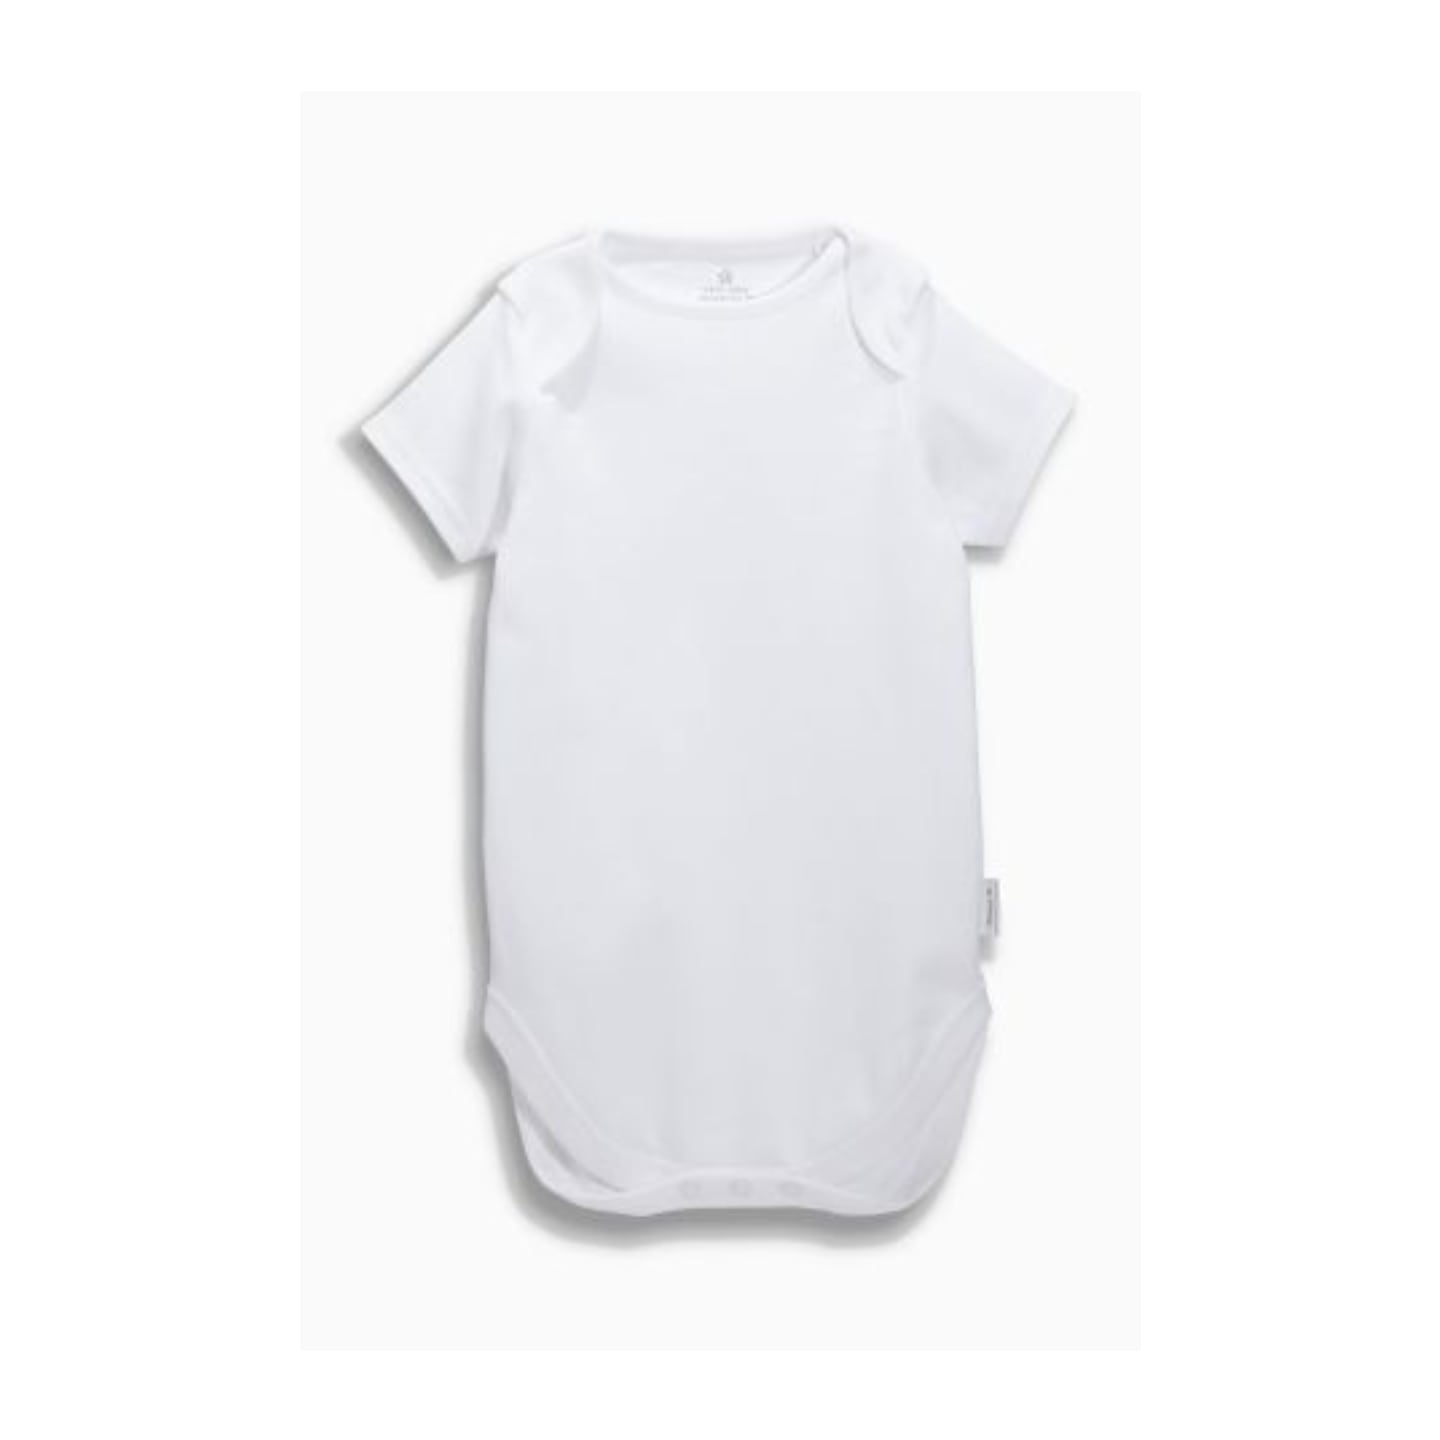 Next White Short Sleeve Bodysuits - Stockpoint Apparel Outlet